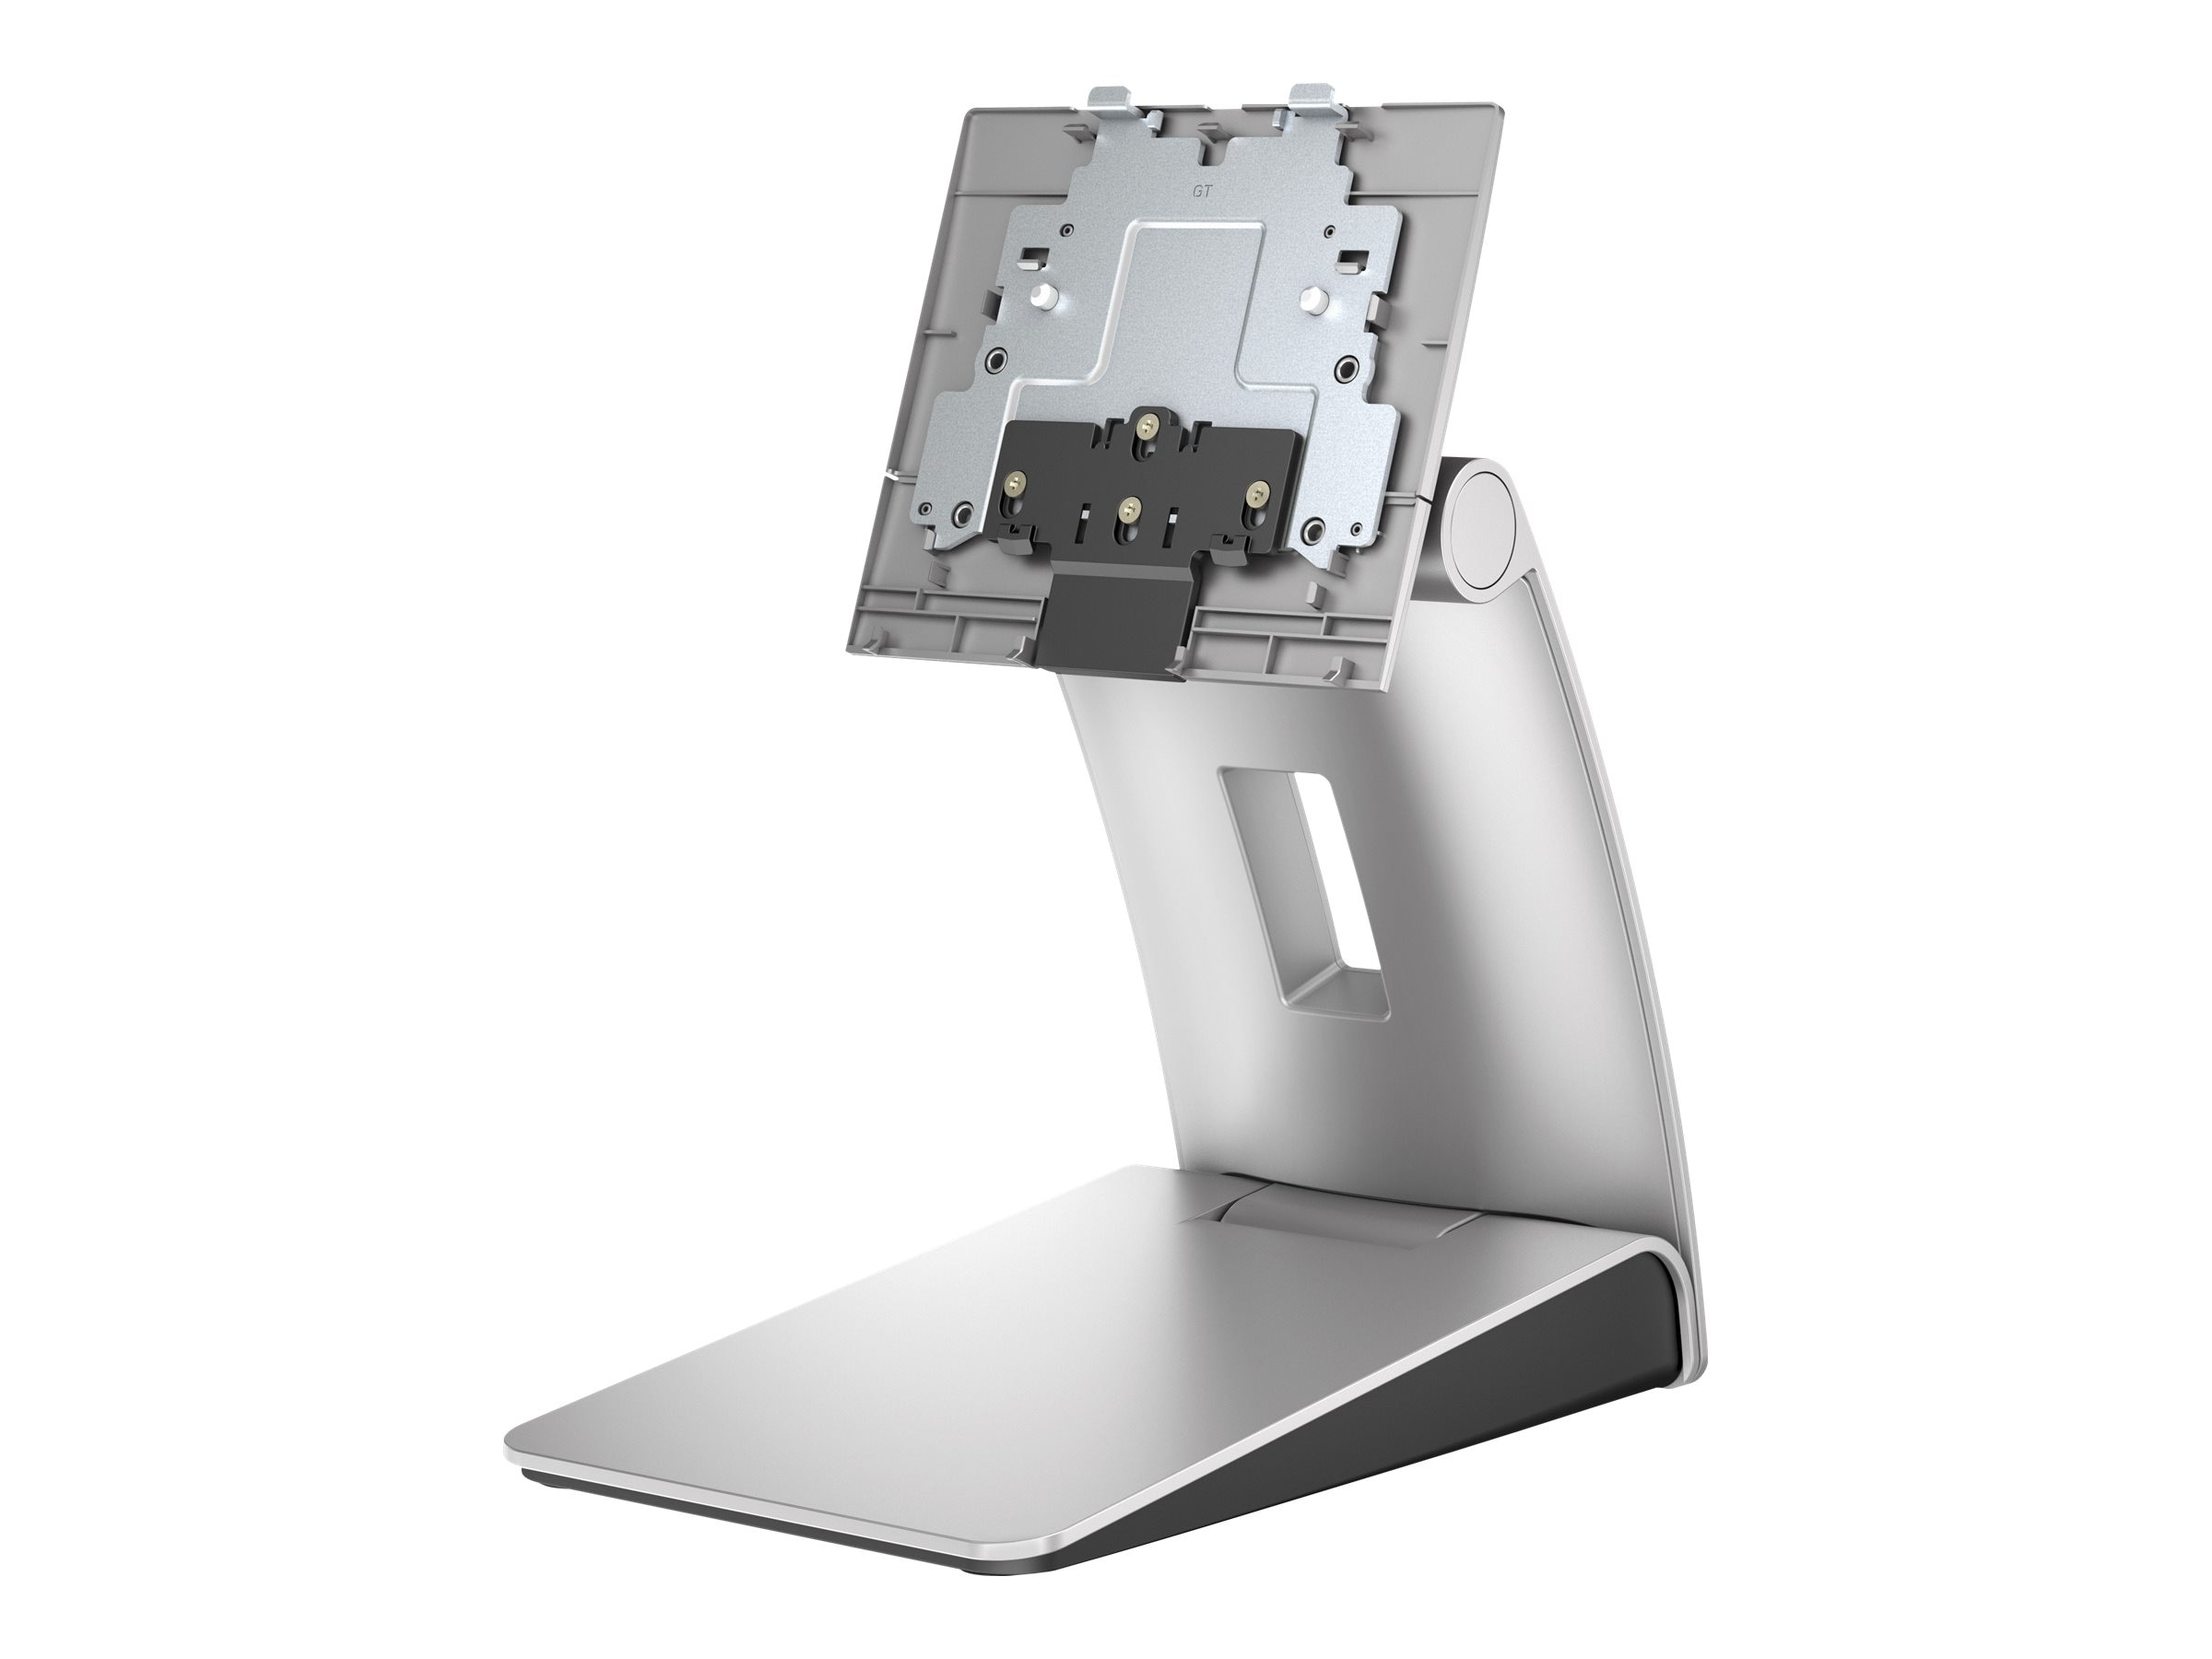 HP ProOne 400 G2 Recline Stand, Gray, T0A01AA